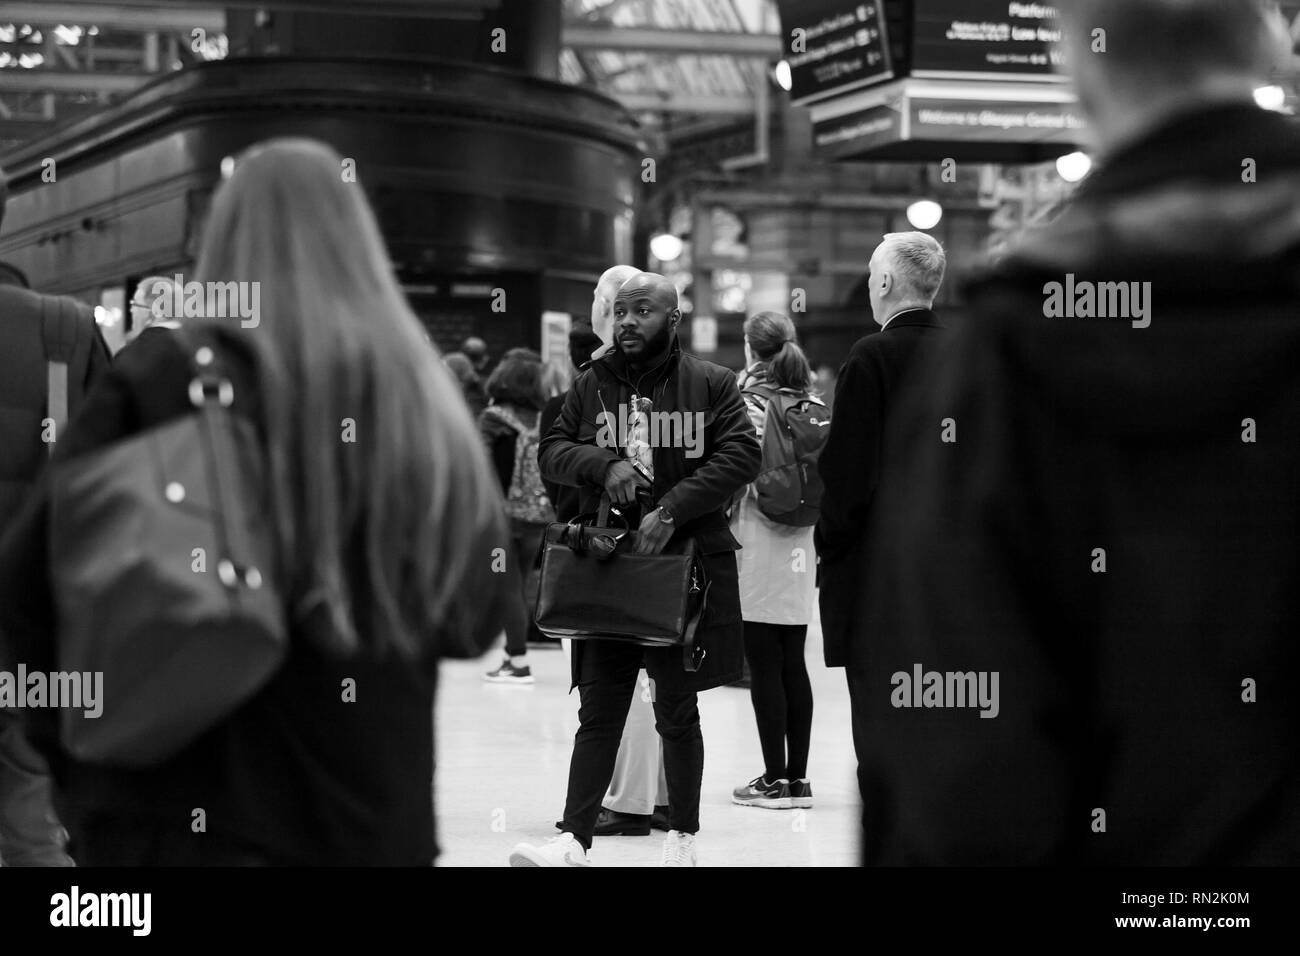 this is a project called rush hour photographed in Glasgow city centre - Stock Image